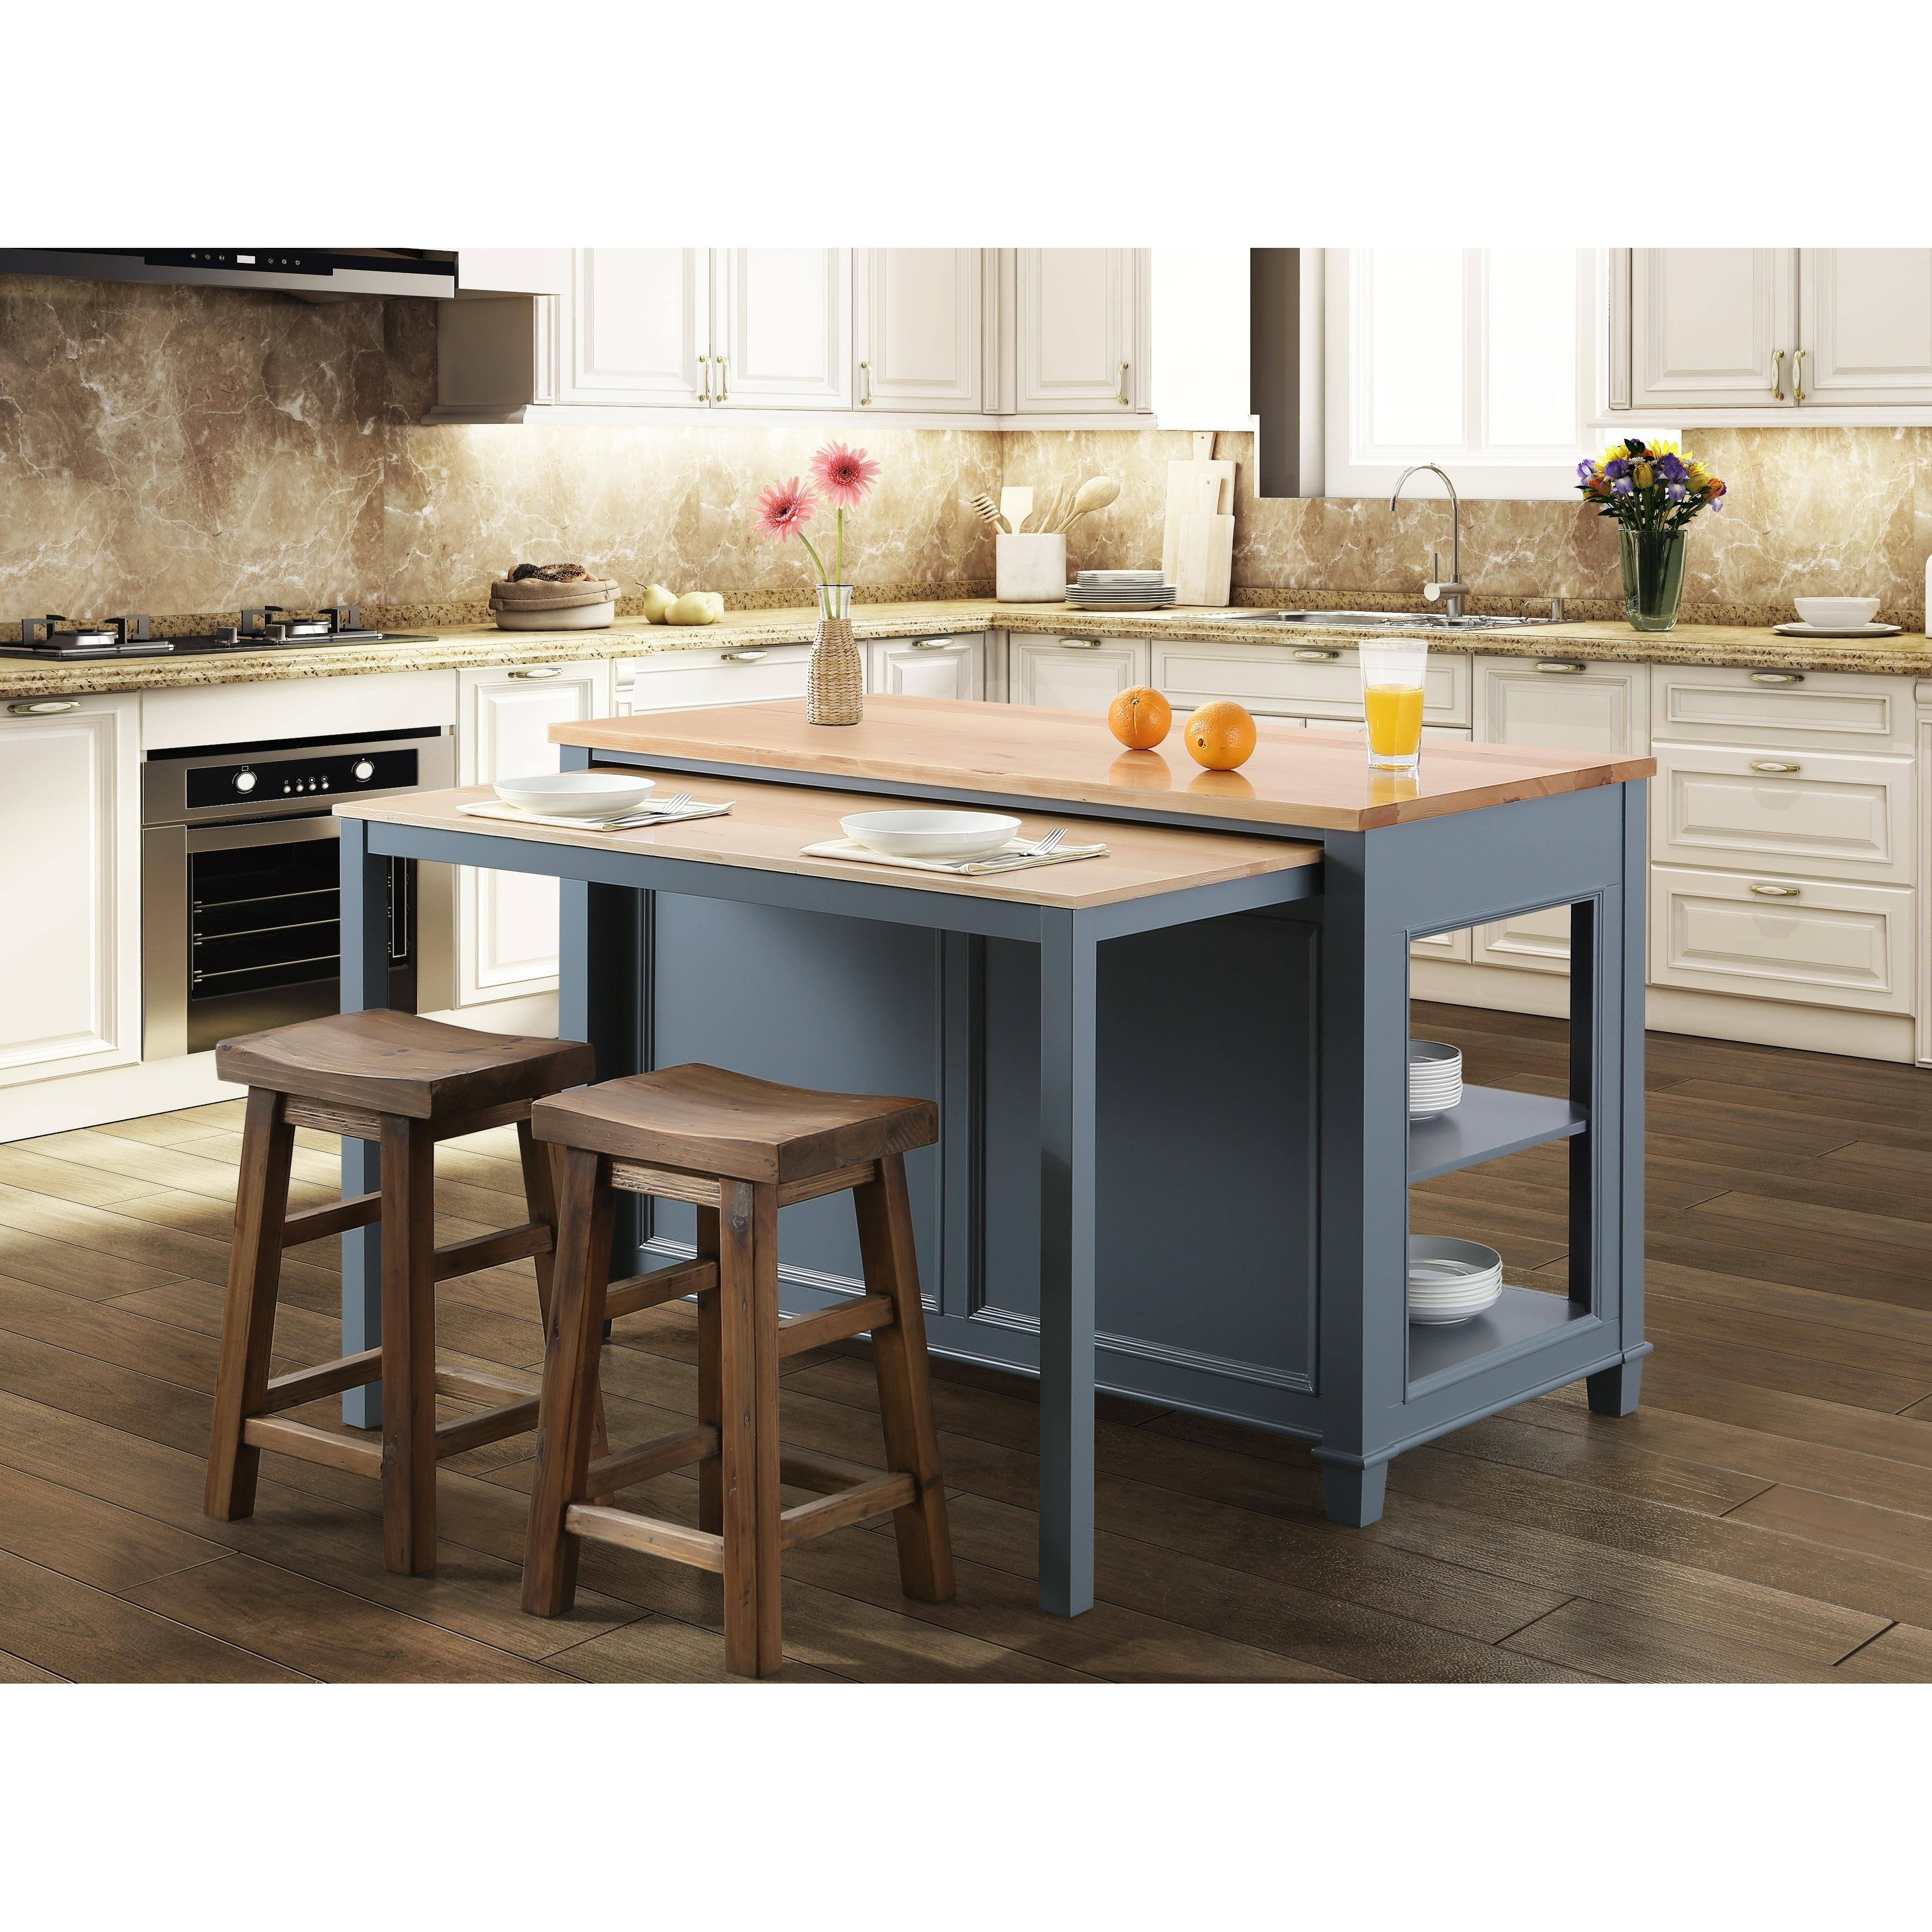 Shop Medley 54 In Kitchen Island With Slide Out Table In Gray Overstock 29108636